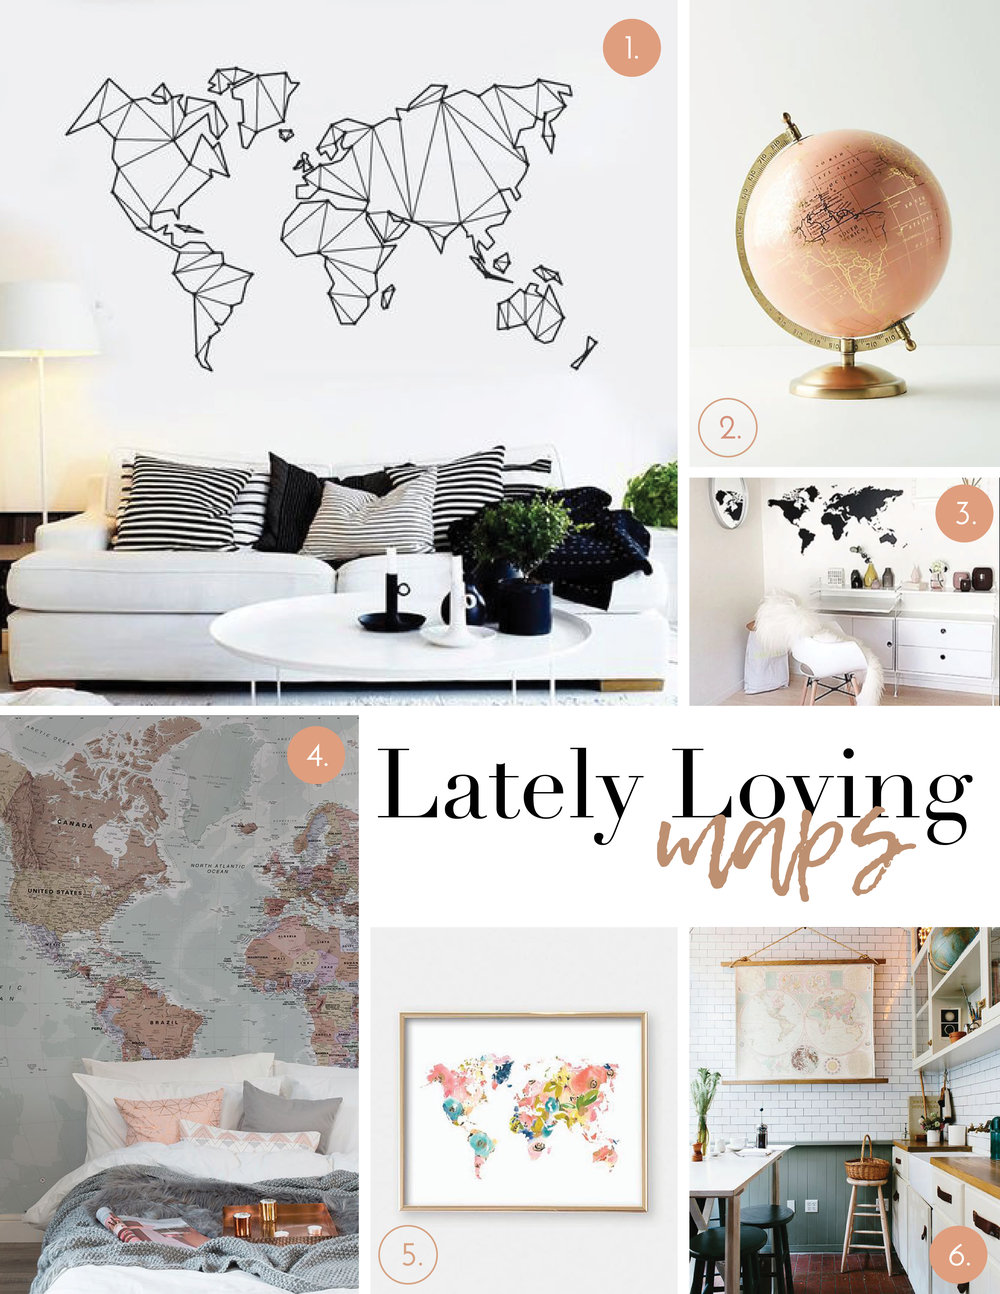 1. Wall Decal   |   2. Globe   |   3. Wall Stickers   |   4. Mural   |   5. Floral Map Print   |   6. Hanging Print